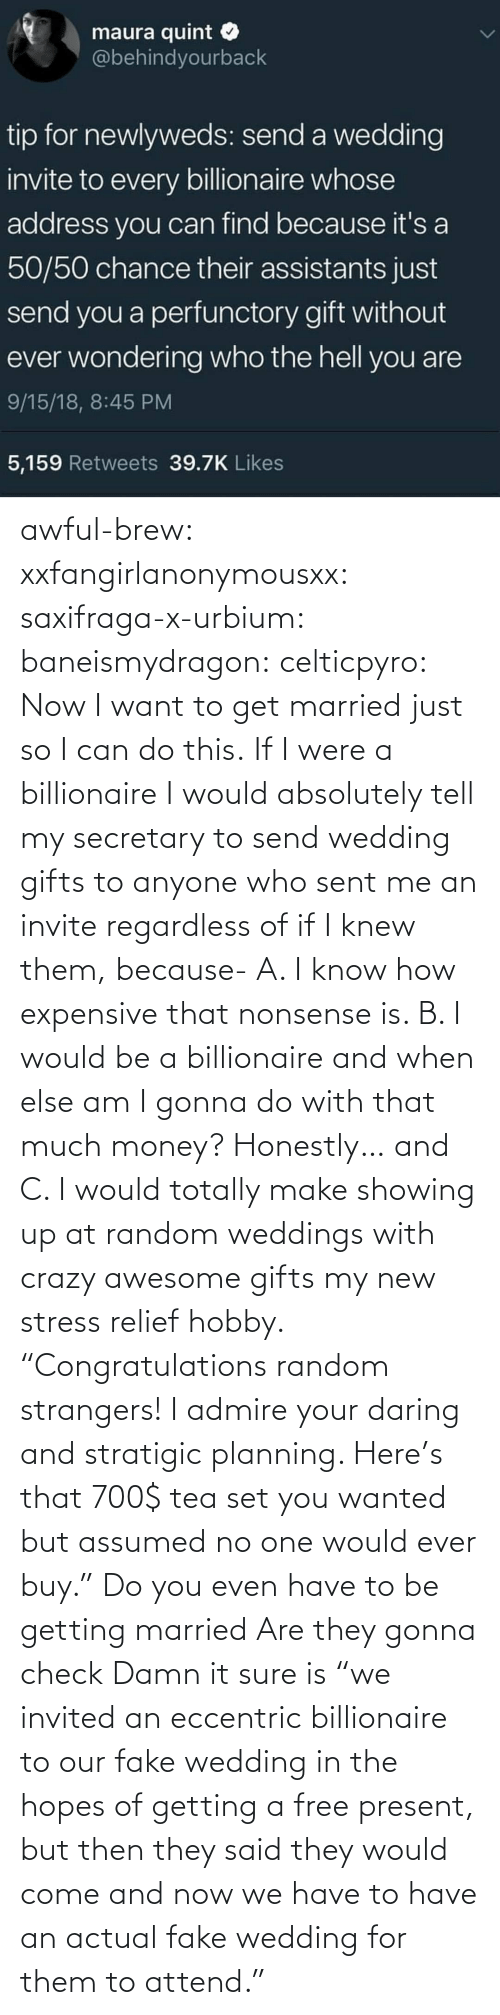 "Nonsense: awful-brew:  xxfangirlanonymousxx:  saxifraga-x-urbium:  baneismydragon:  celticpyro: Now I want to get married just so I can do this.  If I were a billionaire I would absolutely tell my secretary to send wedding gifts to anyone who sent me an invite regardless of if I knew them, because- A. I know how expensive that nonsense is. B. I would be a billionaire and when else am I gonna do with that much money? Honestly… and C. I would totally make showing up at random weddings with crazy awesome gifts my new stress relief hobby. ""Congratulations random strangers! I admire your daring and stratigic planning. Here's that 700$ tea set you wanted but assumed no one would ever buy.""   Do you even have to be getting married Are they gonna check   Damn it sure is  ""we invited an eccentric billionaire to our fake wedding in the hopes of getting a free present, but then they said they would come and now we have to have an actual fake wedding for them to attend."""